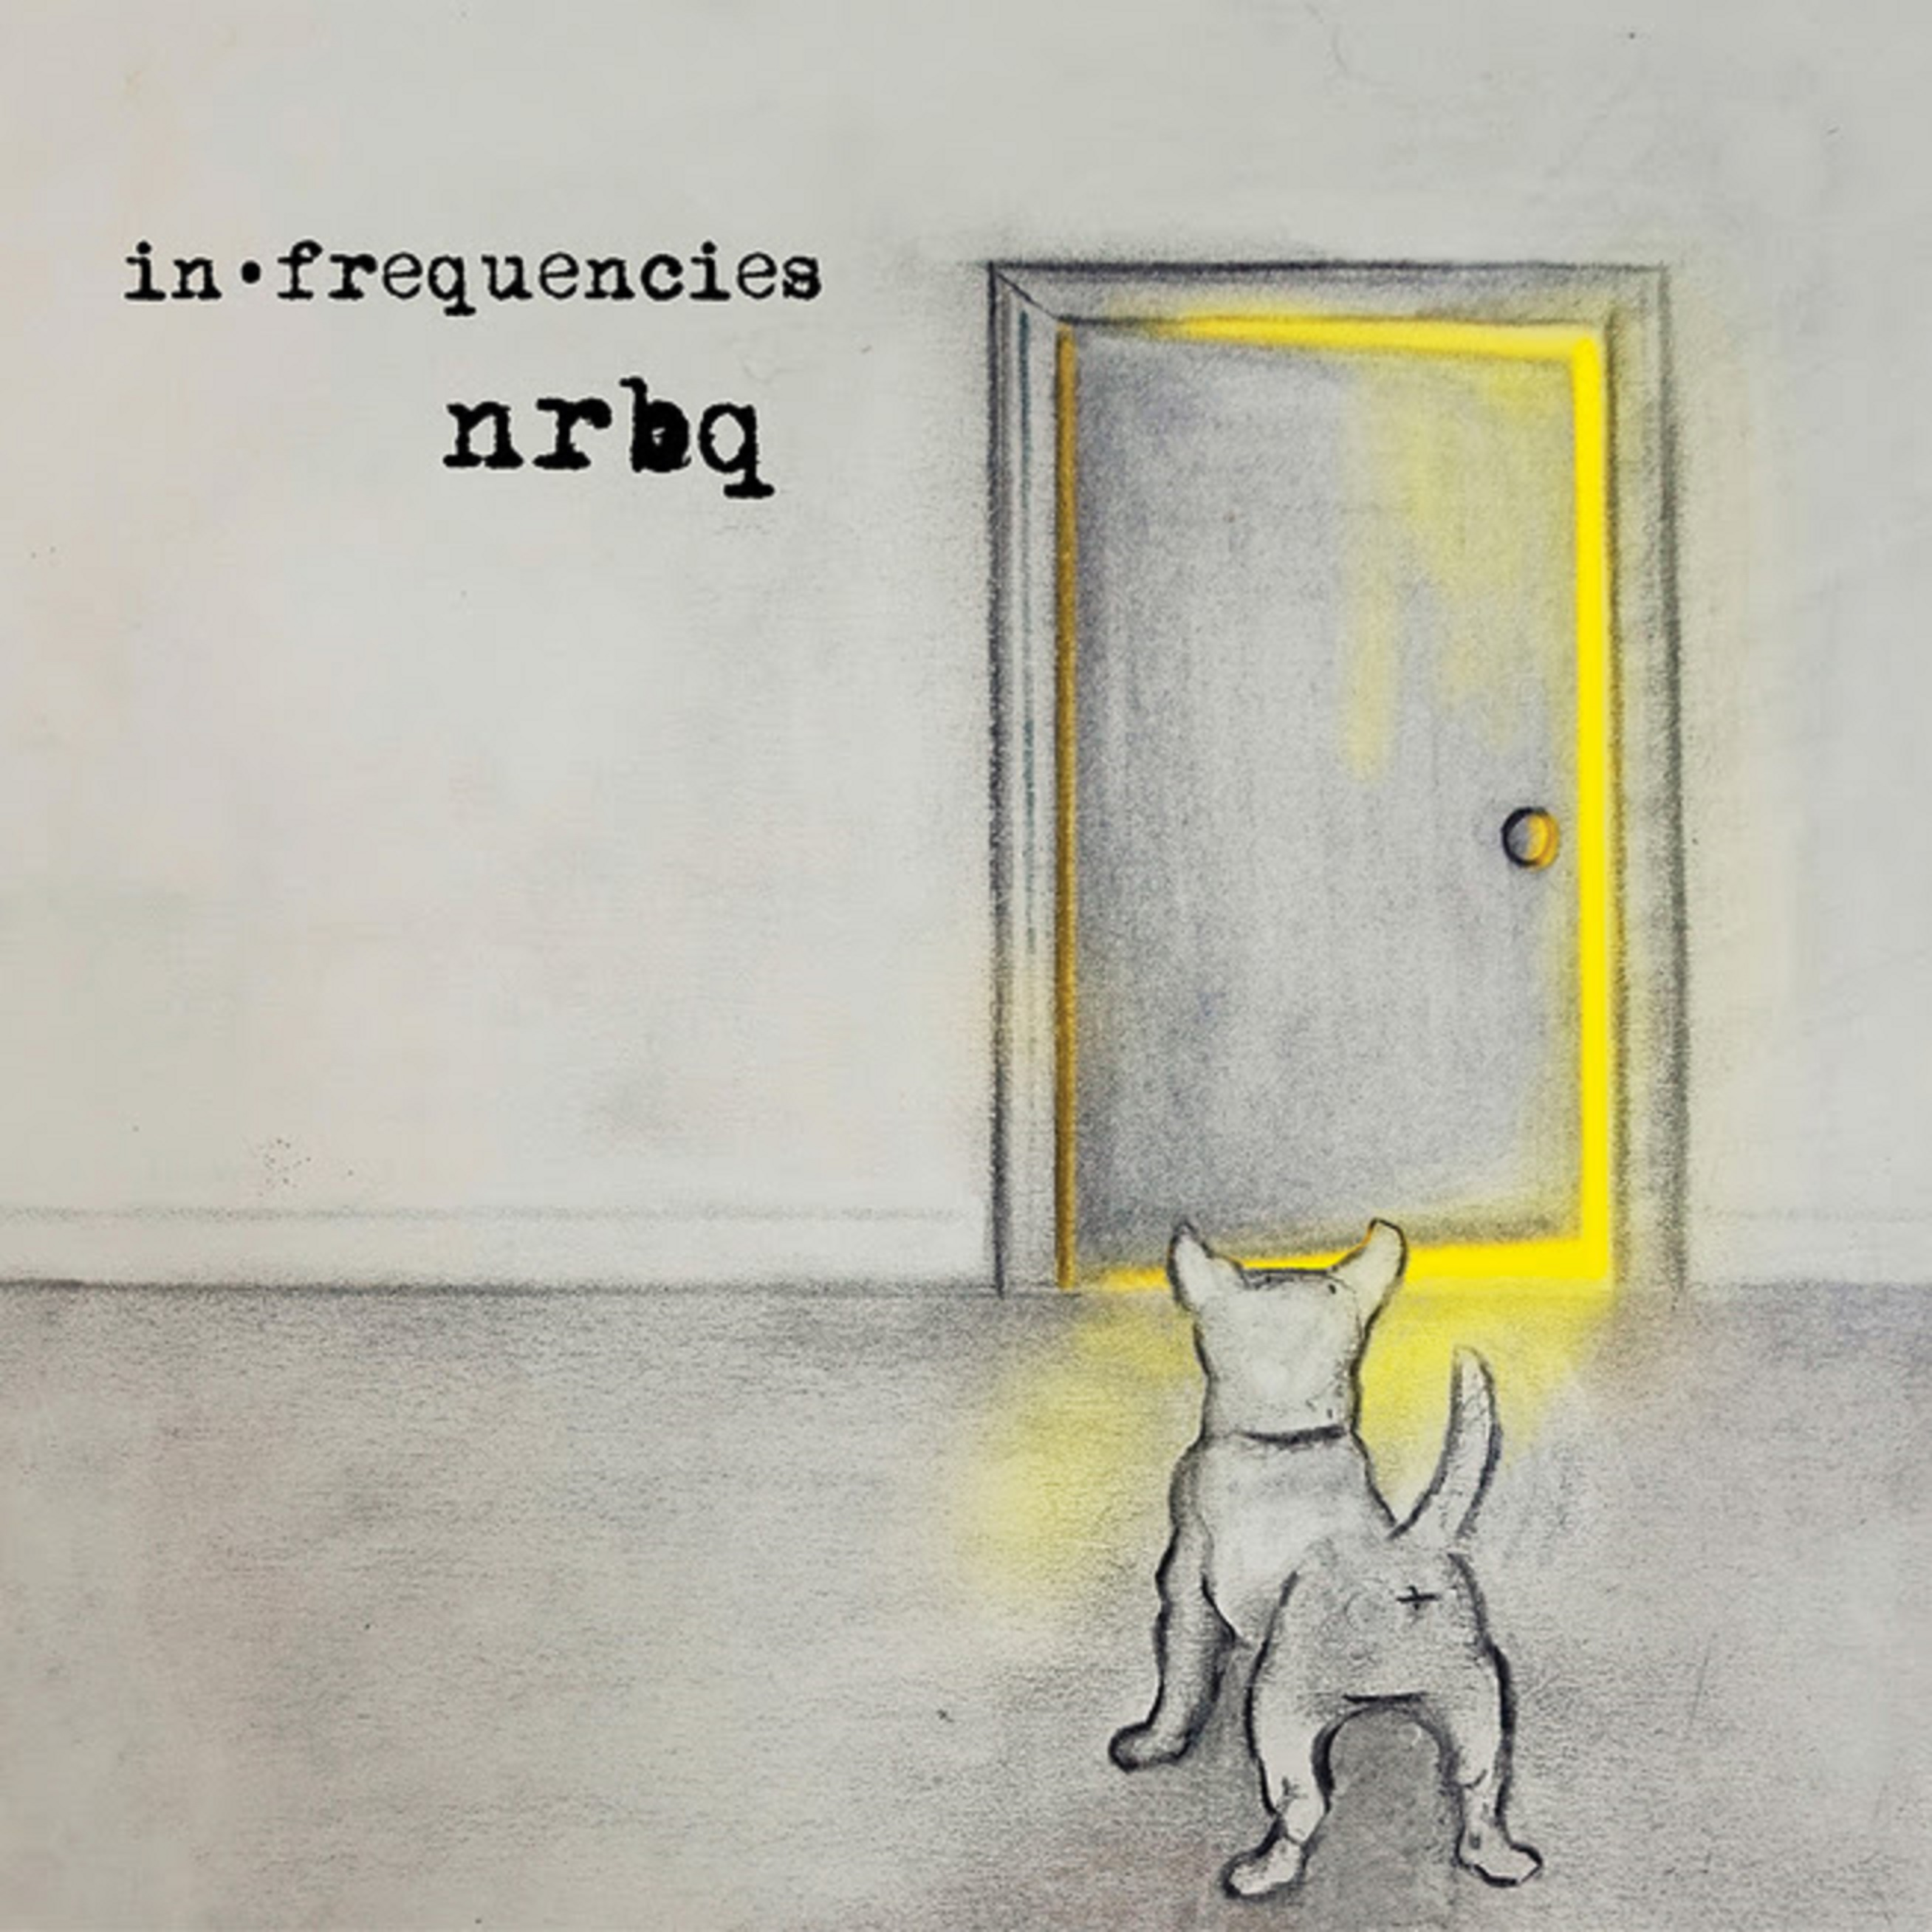 NRBQ collects 16 rarities on 'In * Frequencies'